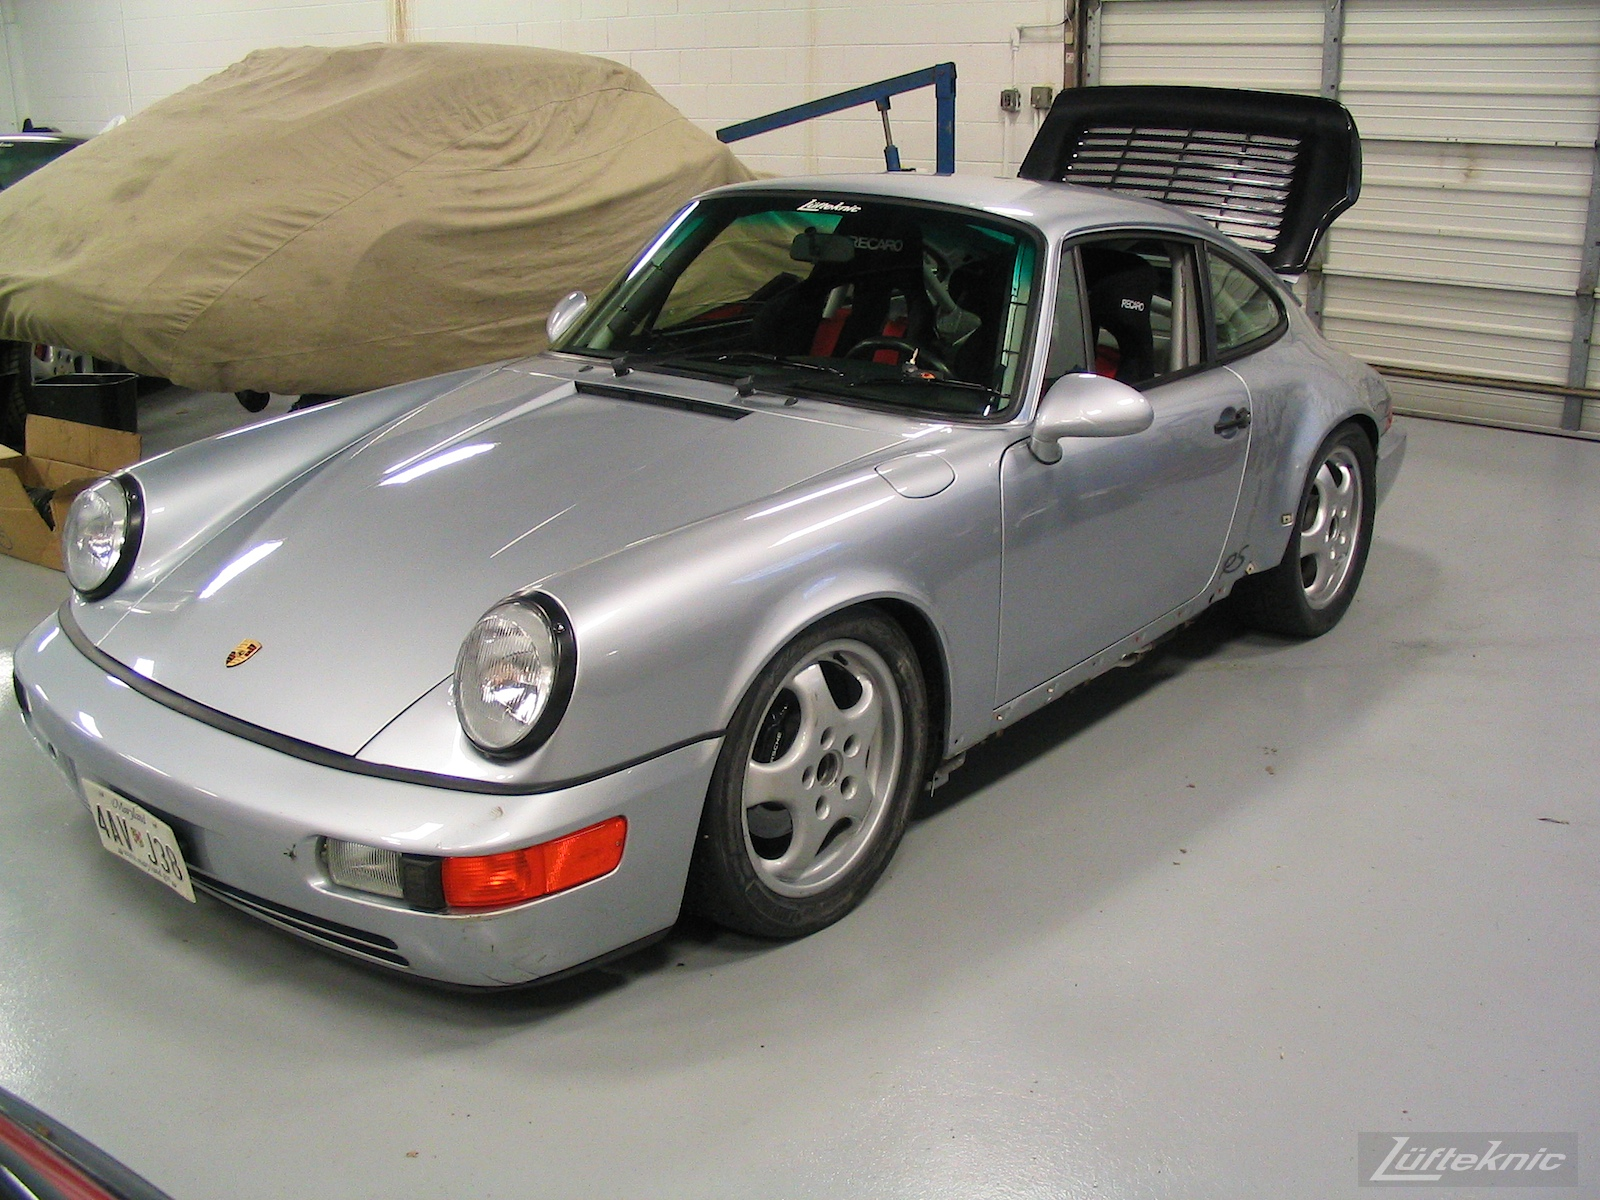 Roll cage, seats, harness installed and fresh paint shown on the 964 RS America.